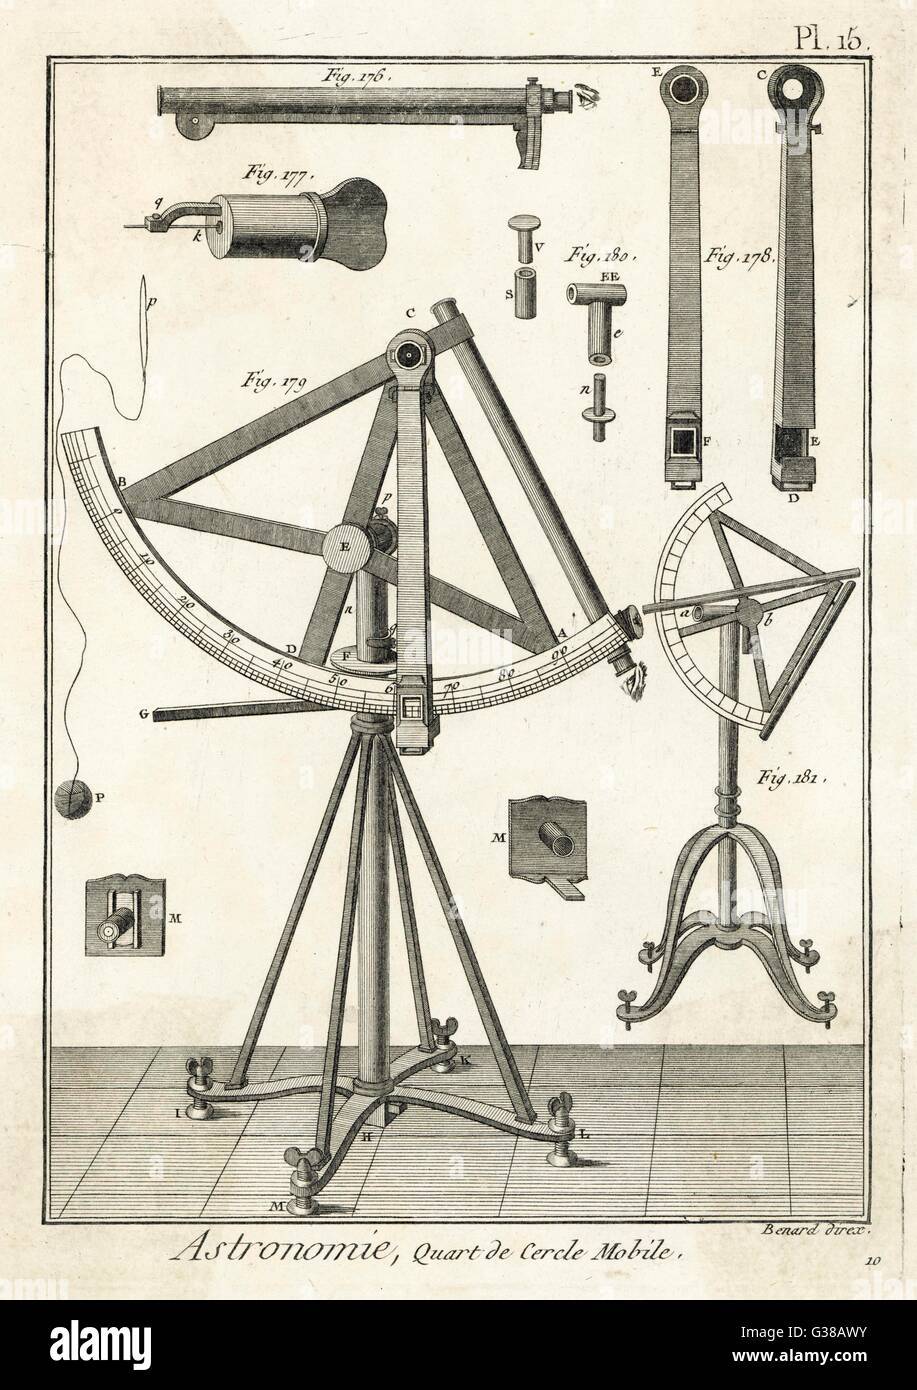 An astronomical quadrant         Date: 1760 - Stock Image